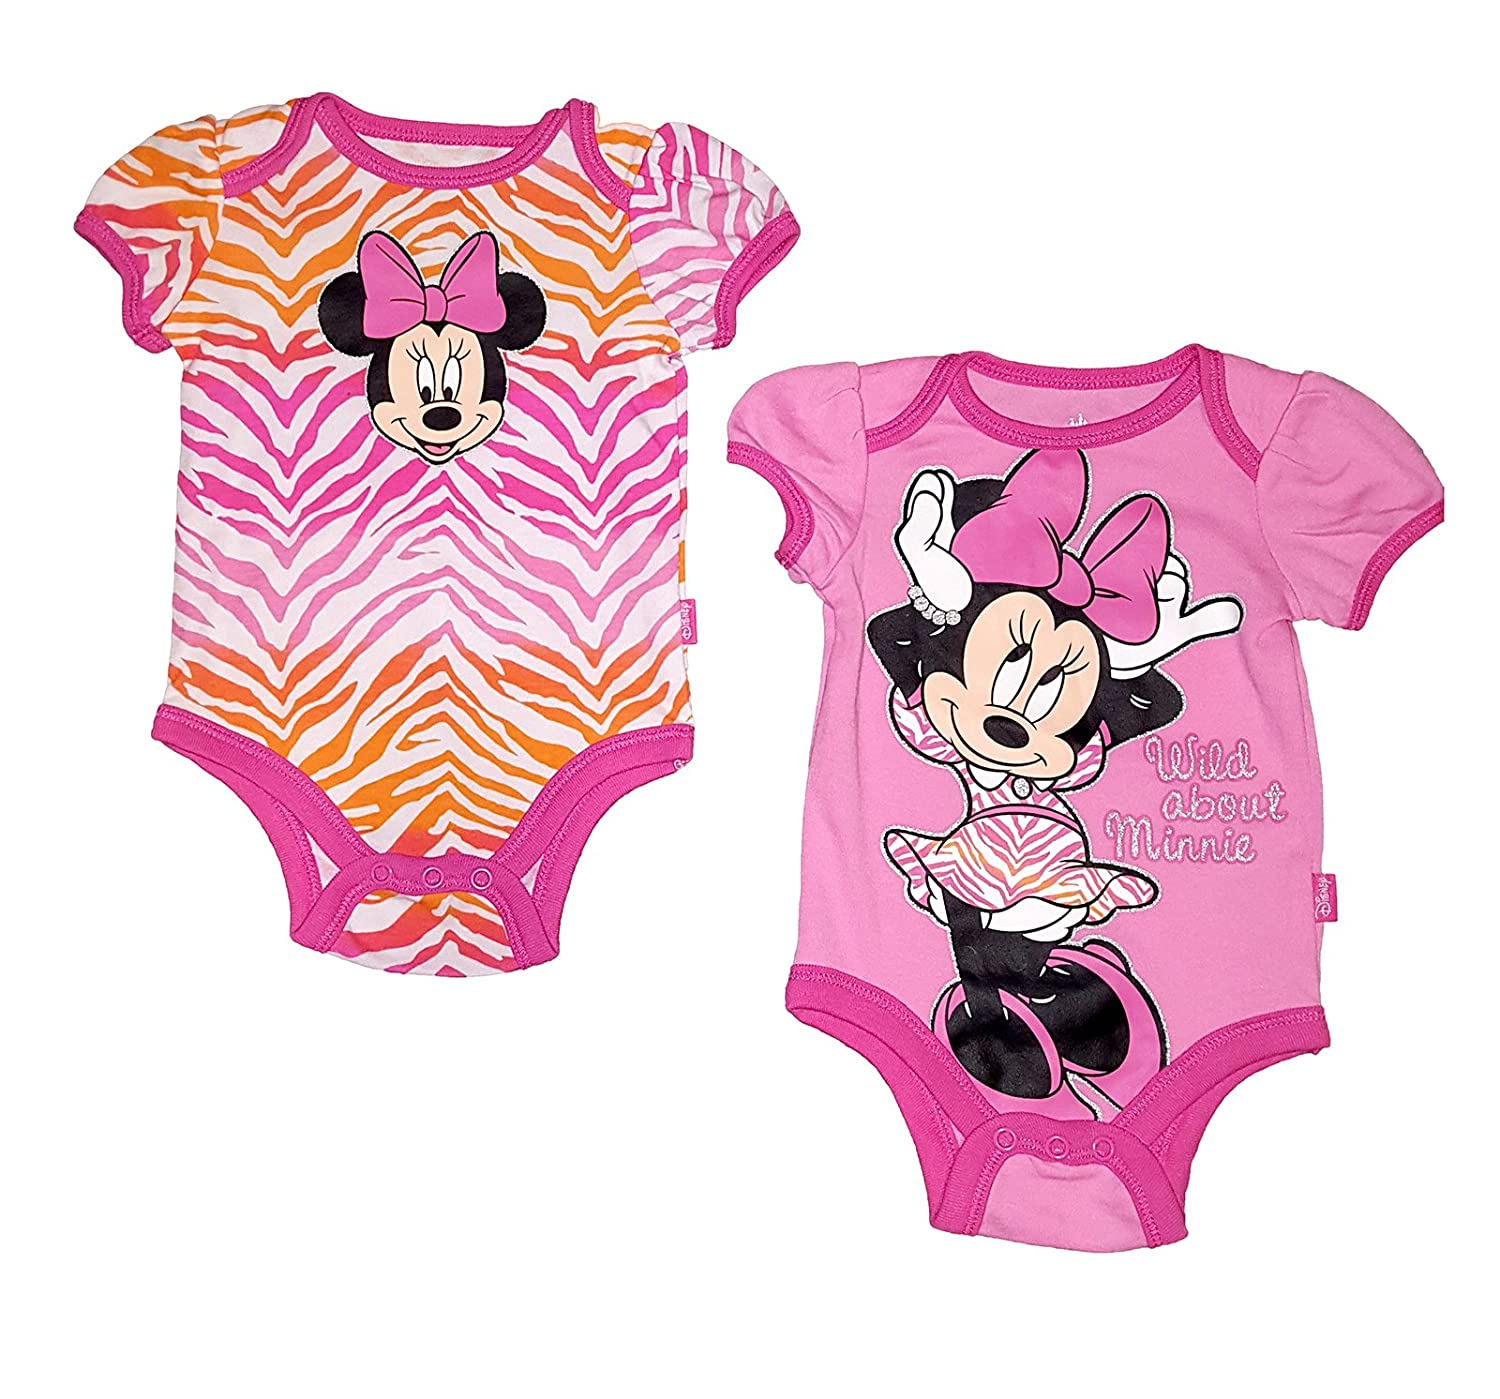 e538f8b5b Amazon.com: Disney Baby Minnie Mouse Infant 2 Pack Creeper Romper Set:  Clothing